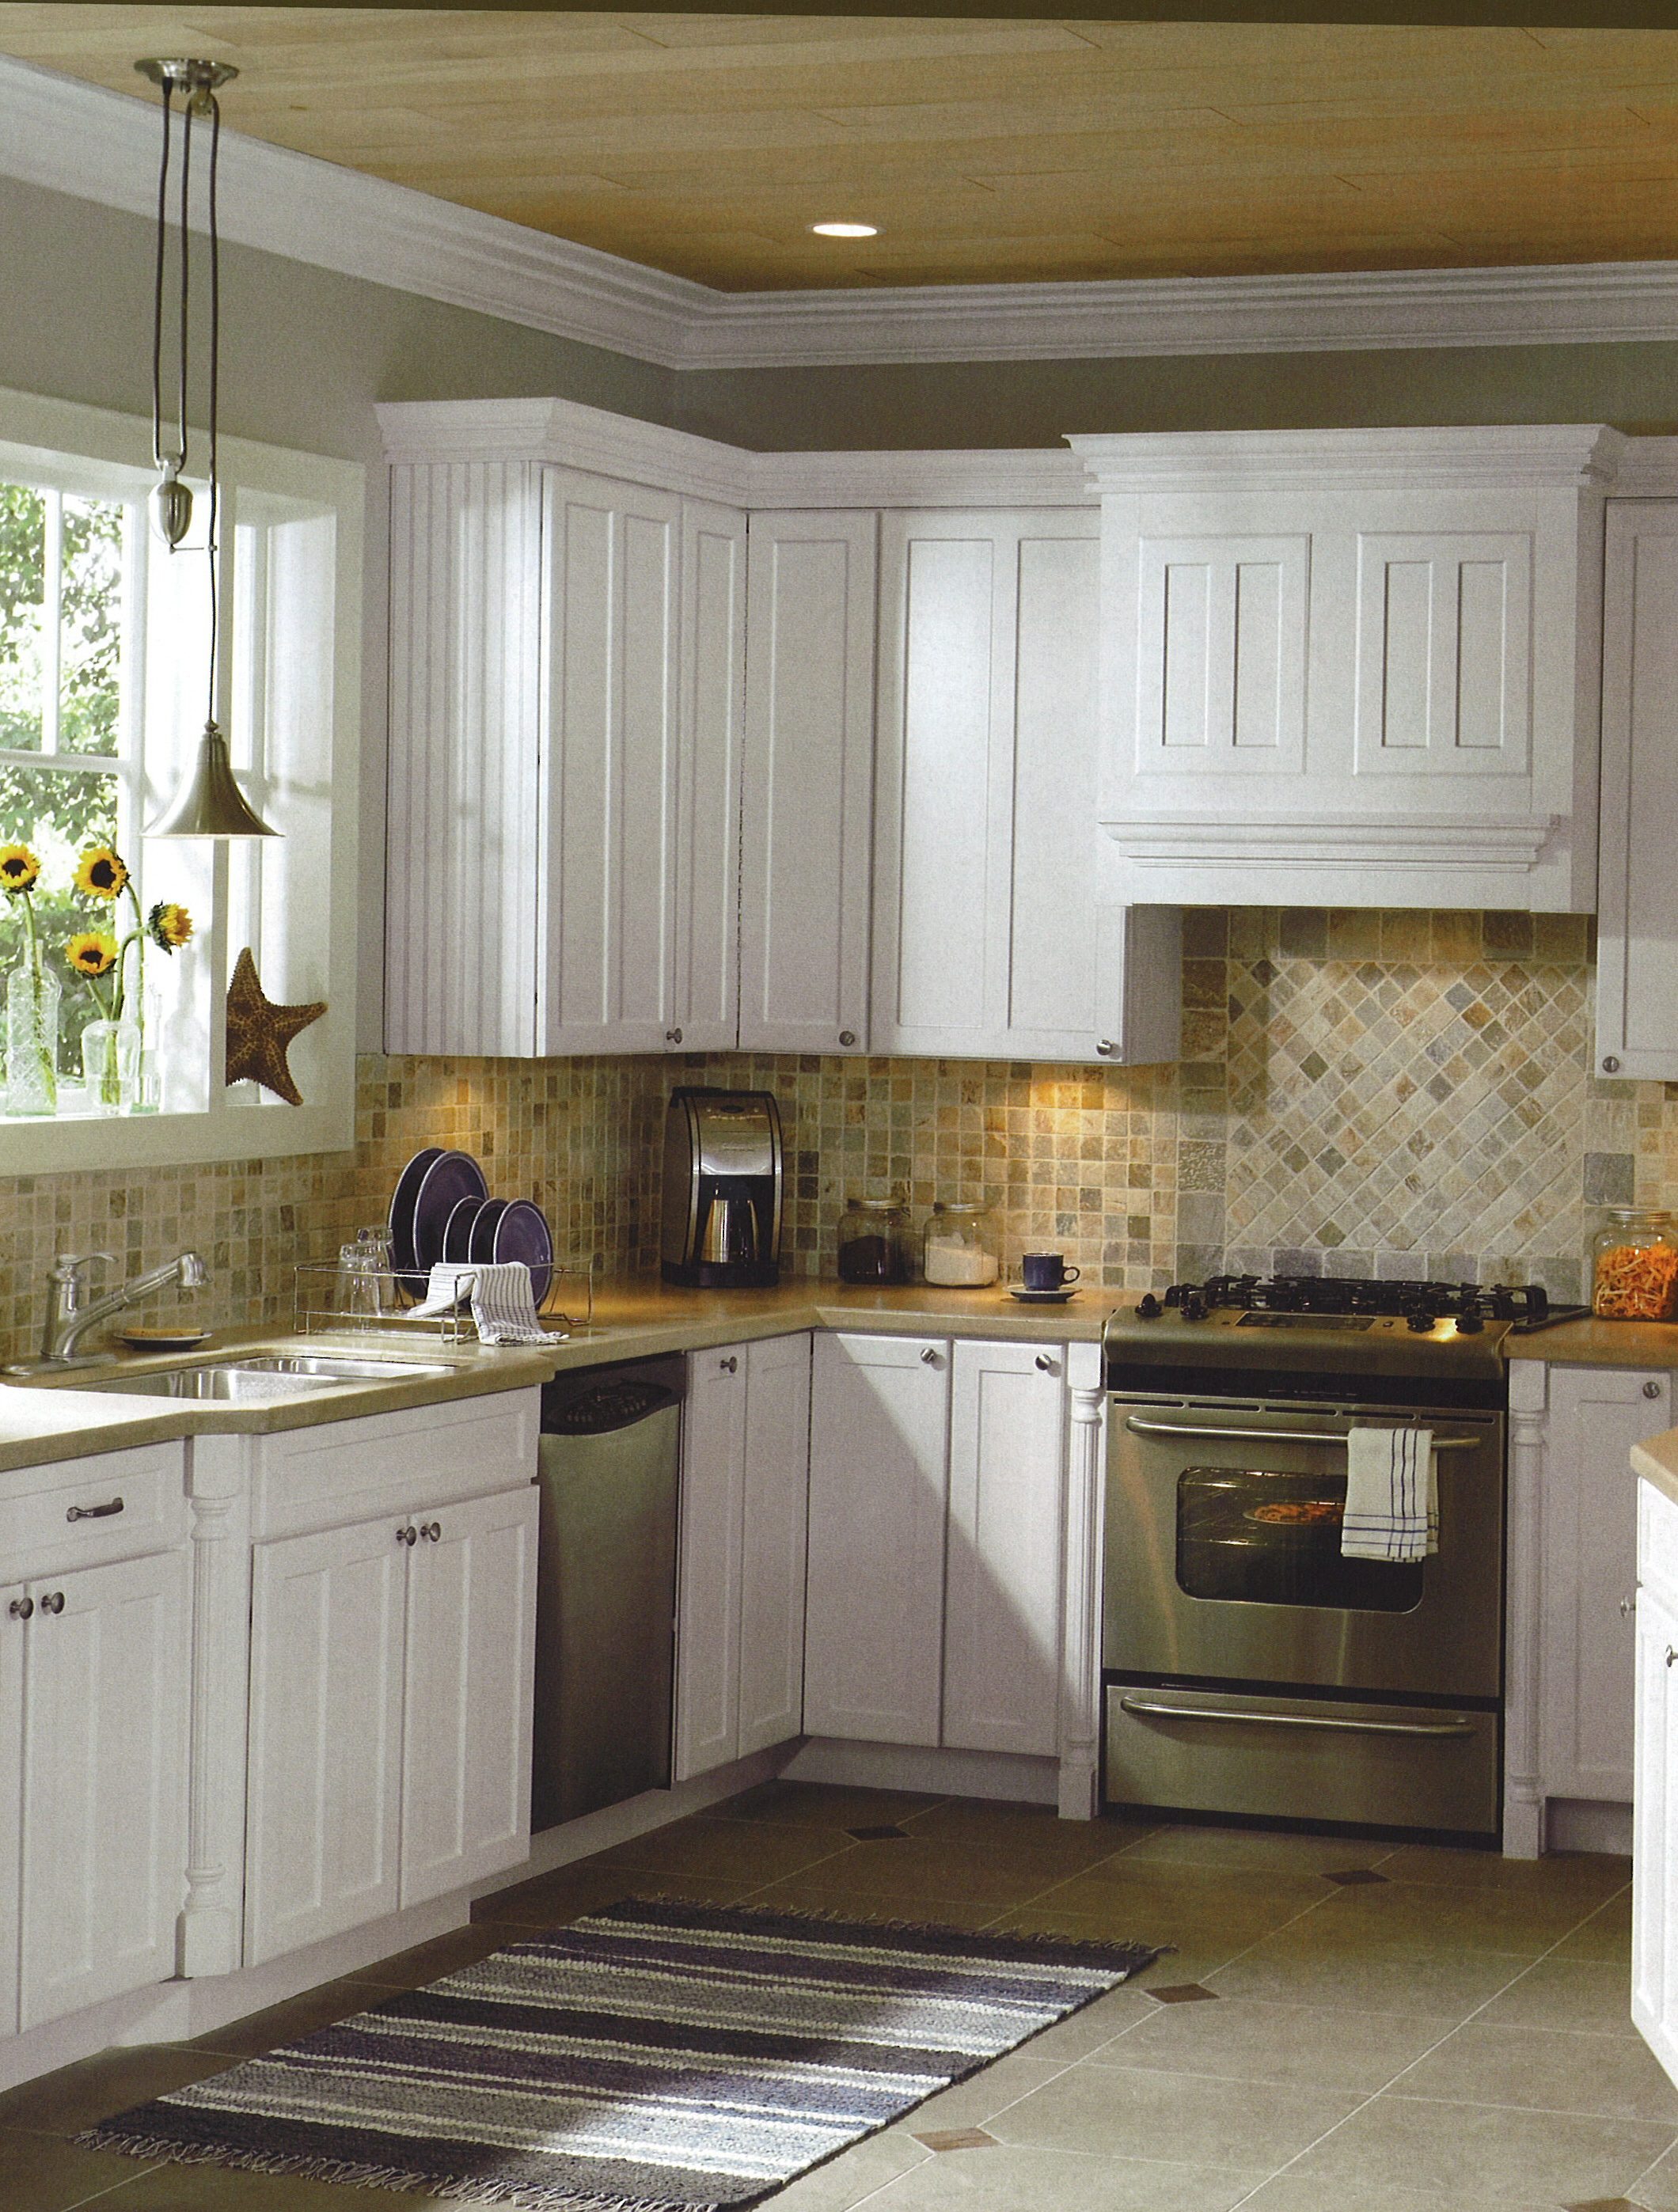 Country Kitchen with White Cabinet Backsplash